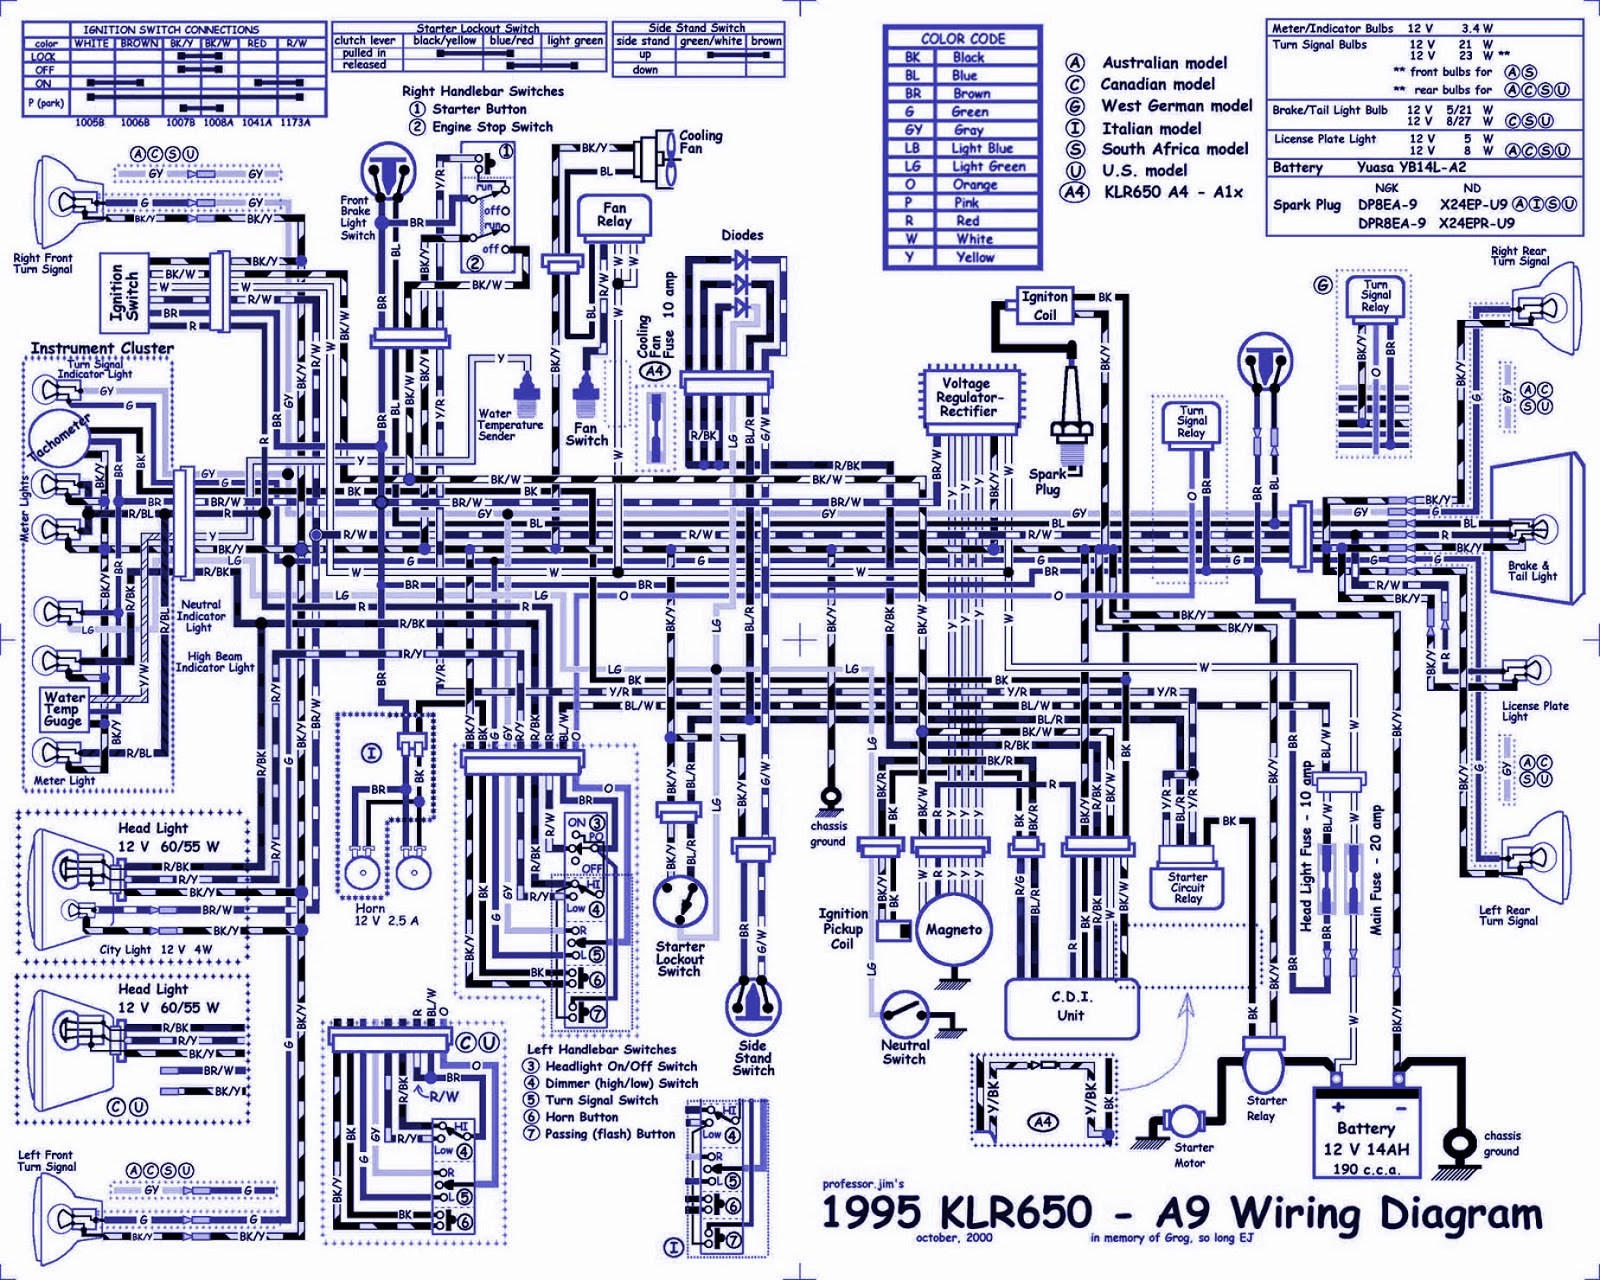 Electrical Diagram Software Create An Electrical Diagram Easily – K1300s Wiring Diagram